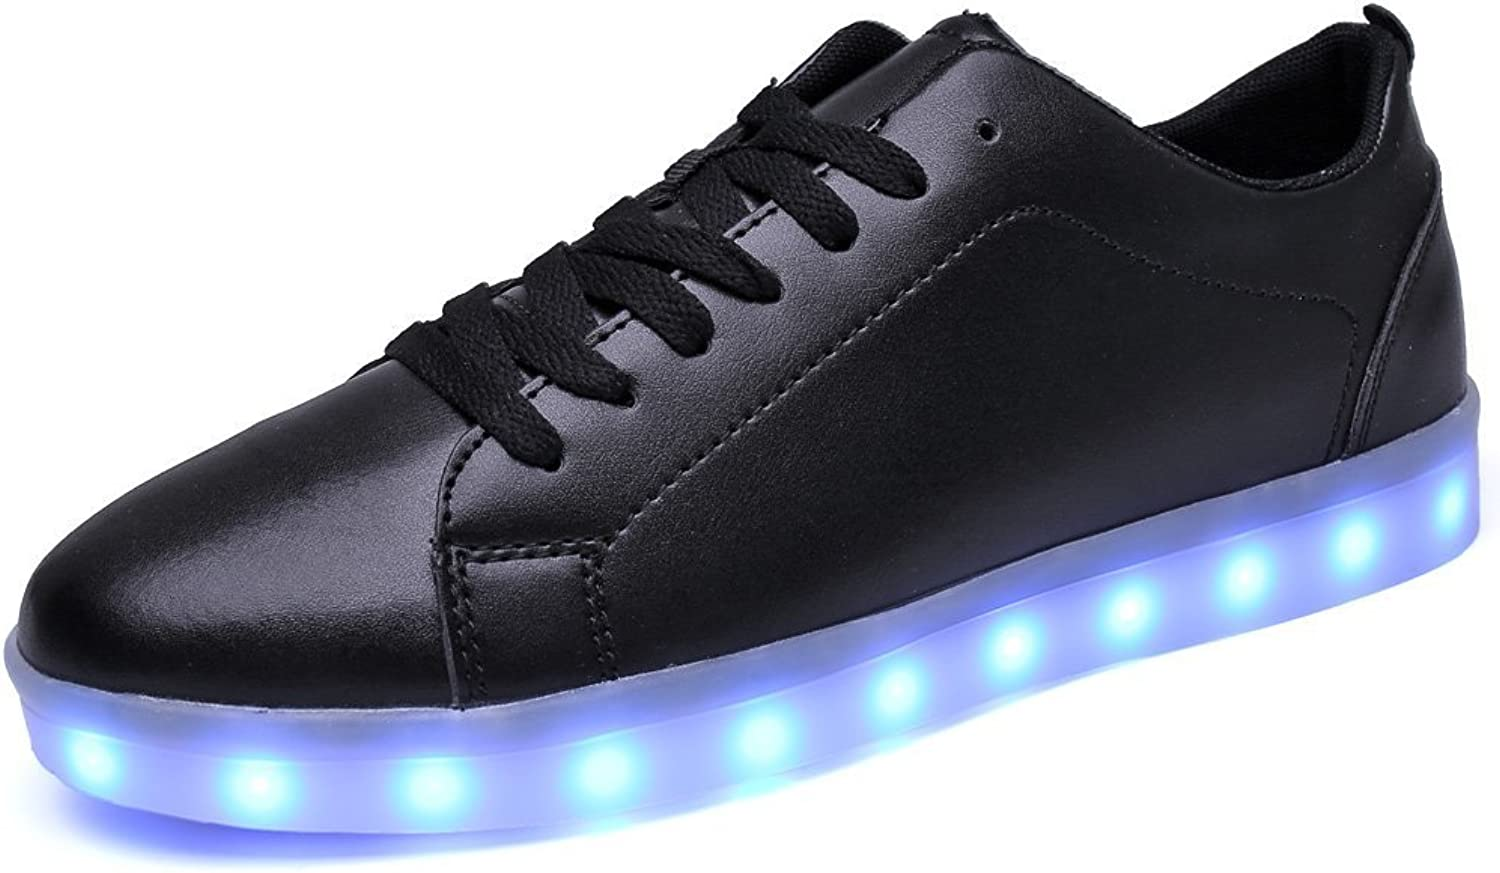 Pit4tk 2017 Fashionable LED shoes USB Charging Light Up Glow shoes Sneakers Flashing Luminous